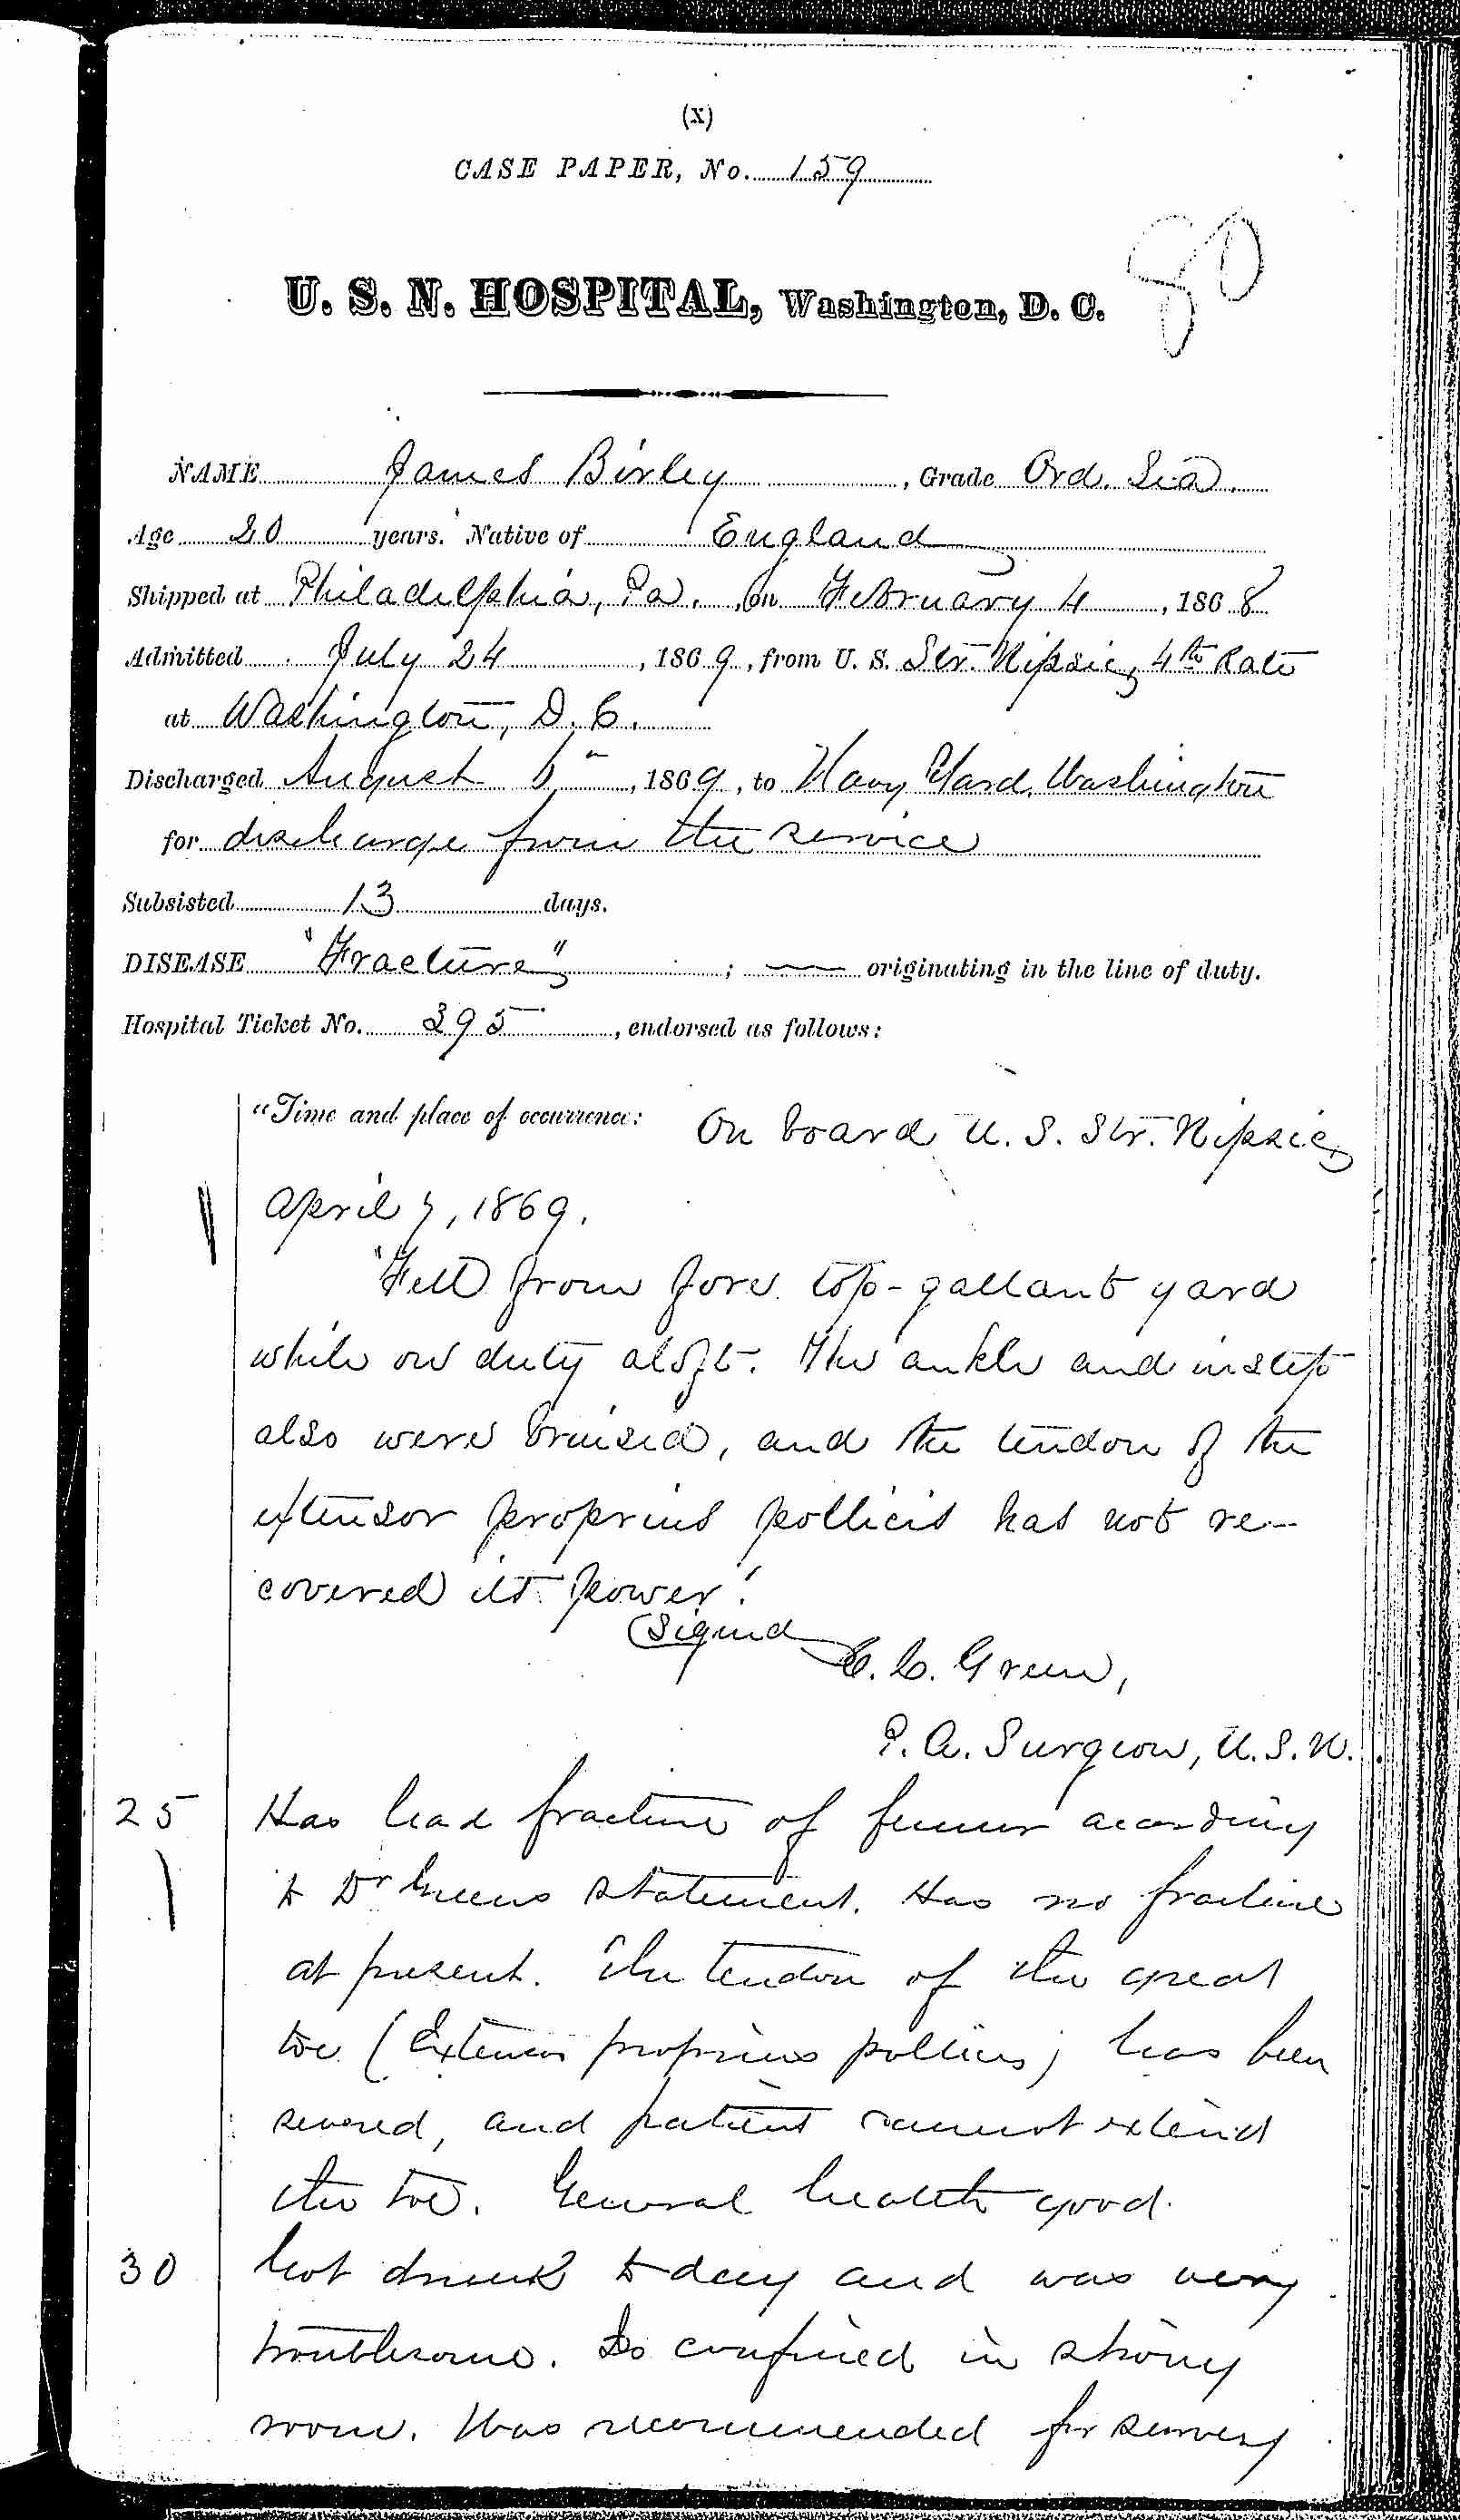 Entry for James Birley (page 1 of 2) in the log Hospital Tickets and Case Papers - Naval Hospital - Washington, D.C. - 1868-69